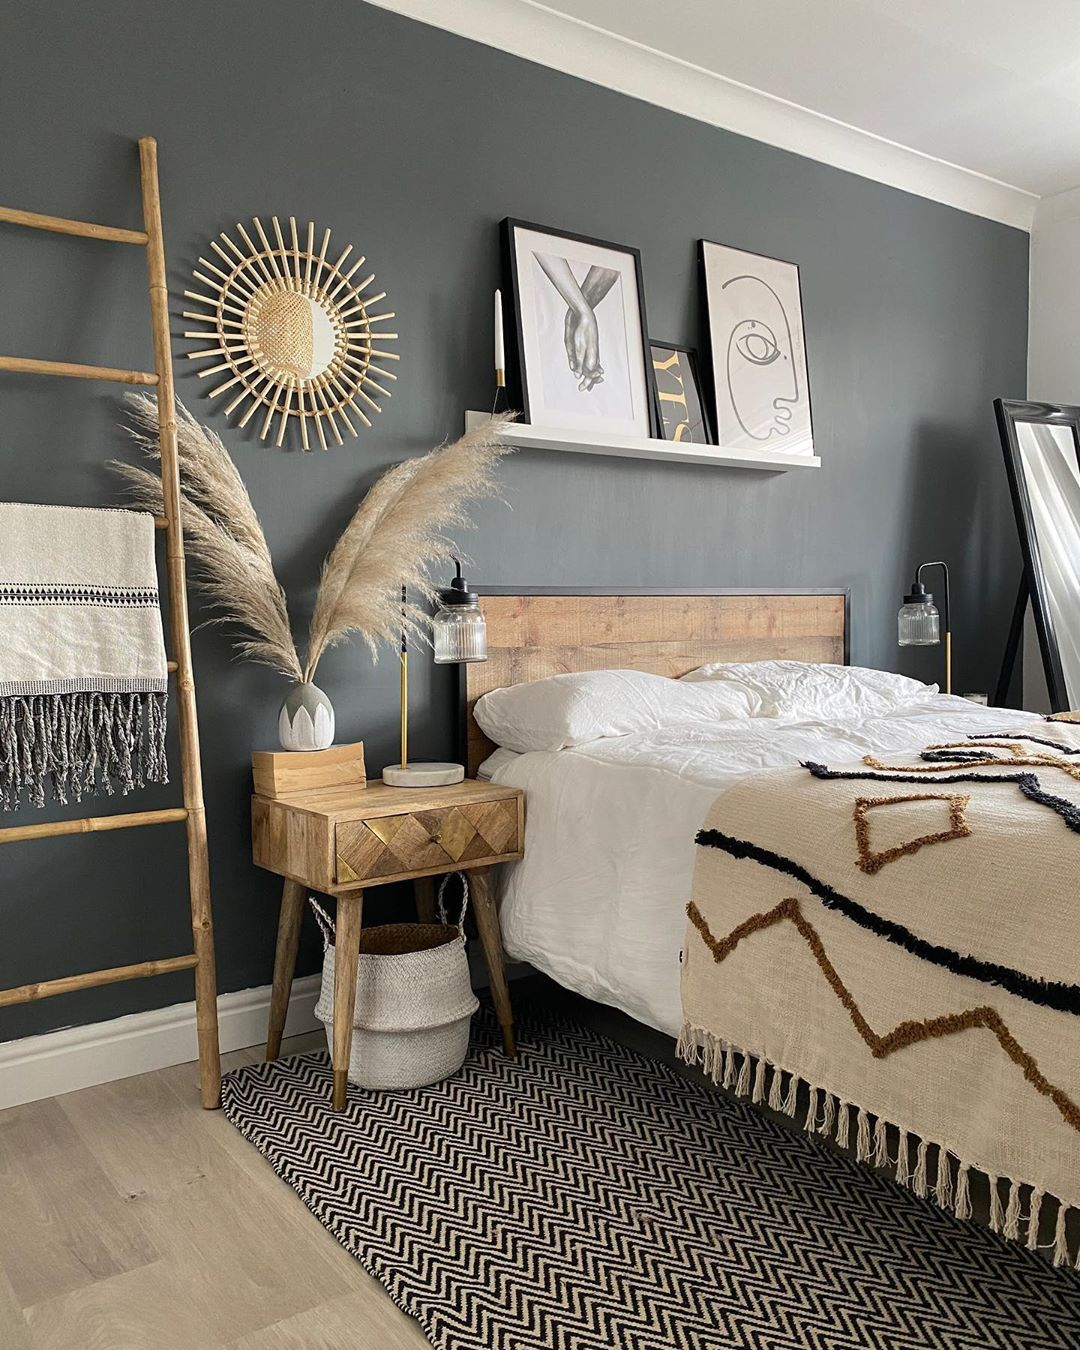 Mel Interior Inspiration S Instagram Post Morning Guys I M Dragging Myself Out Of This Here Bedroom Decor Guest Bedroom Decor Modern Living Room Interior